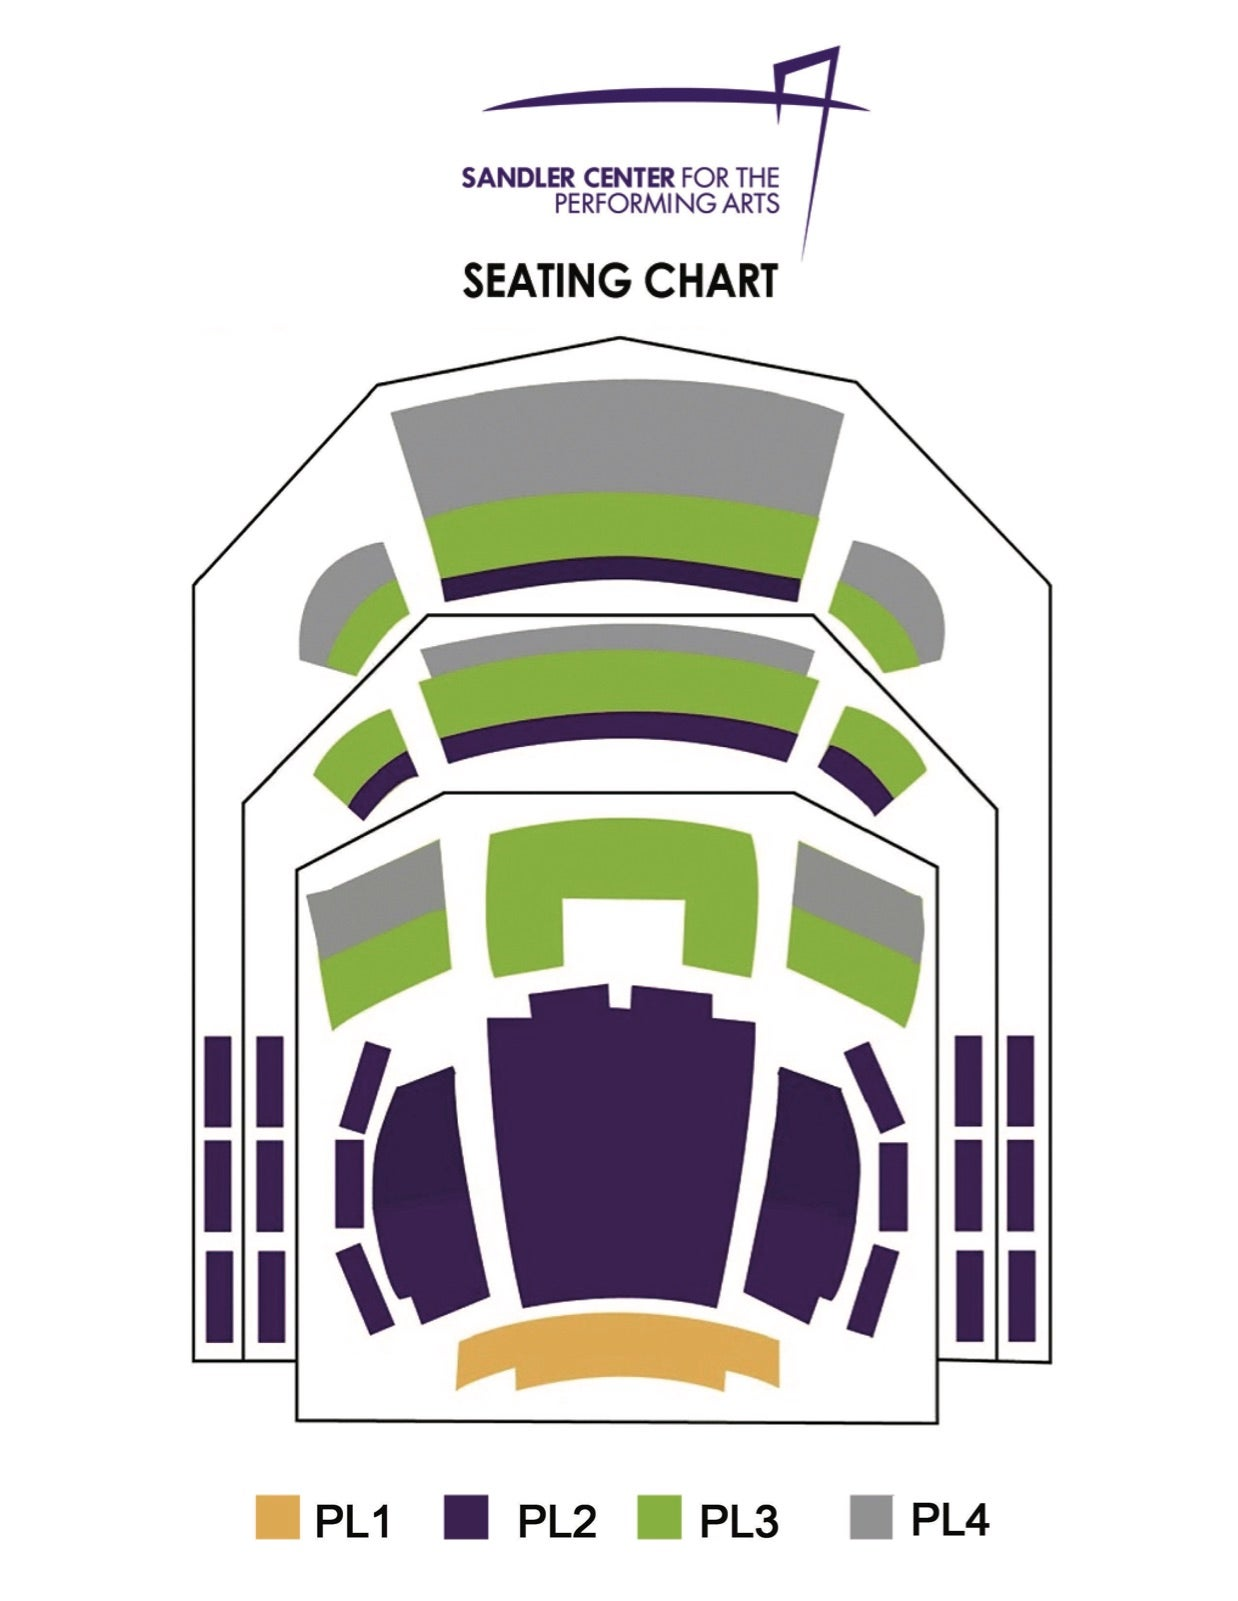 Sandler Center Seating